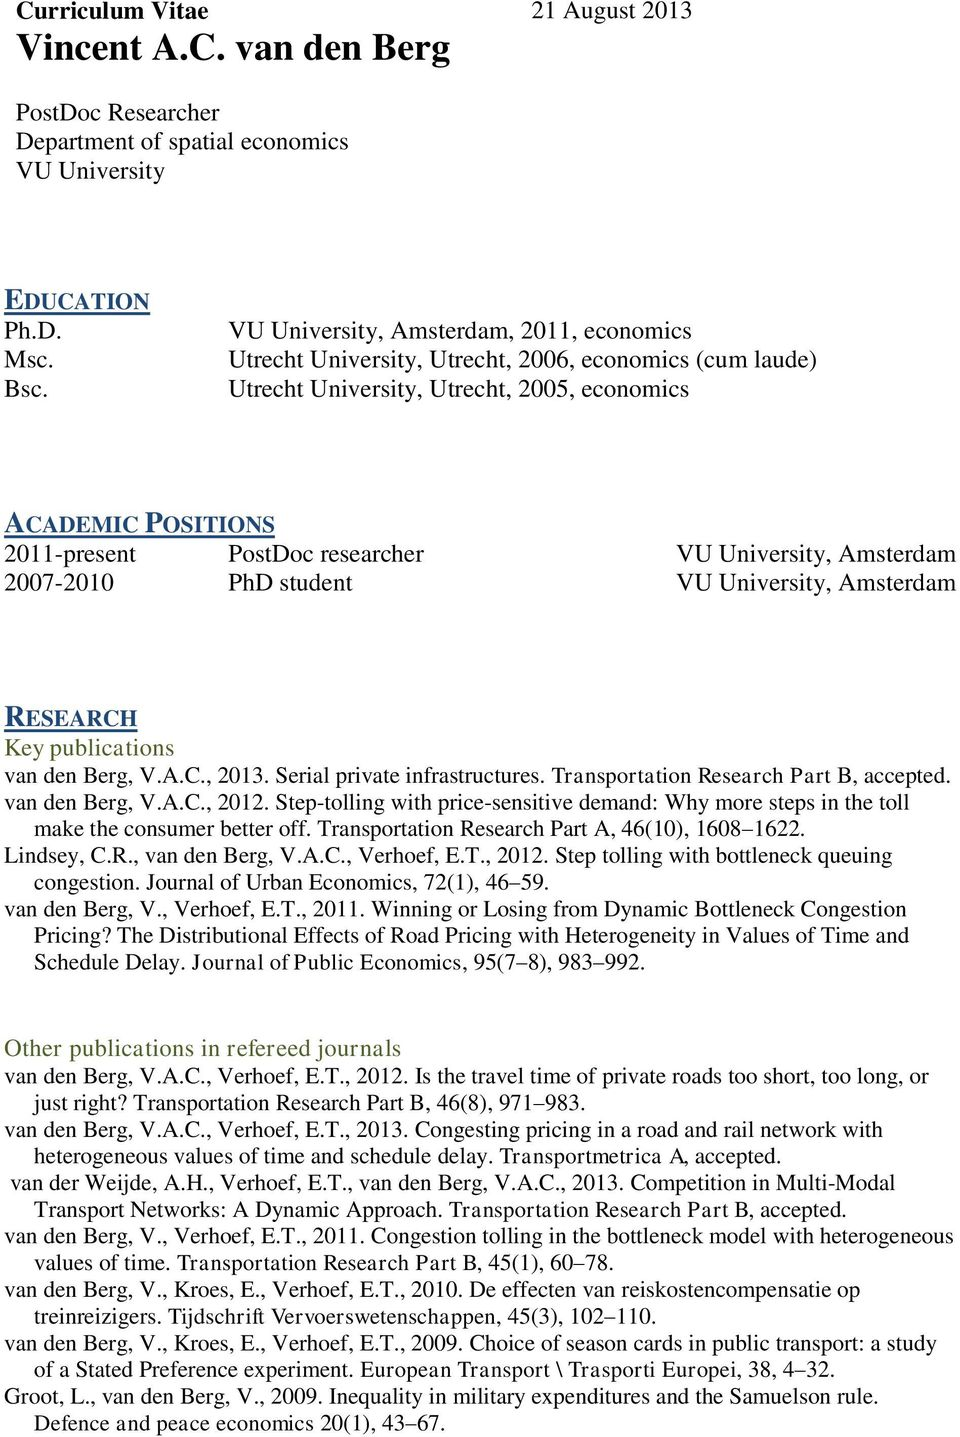 University, Amsterdam 2007-2010 PhD student VU University, Amsterdam RESEARCH Key publications van den Berg, V.A.C., 2013. Serial private infrastructures. Transportation Research Part B, accepted.